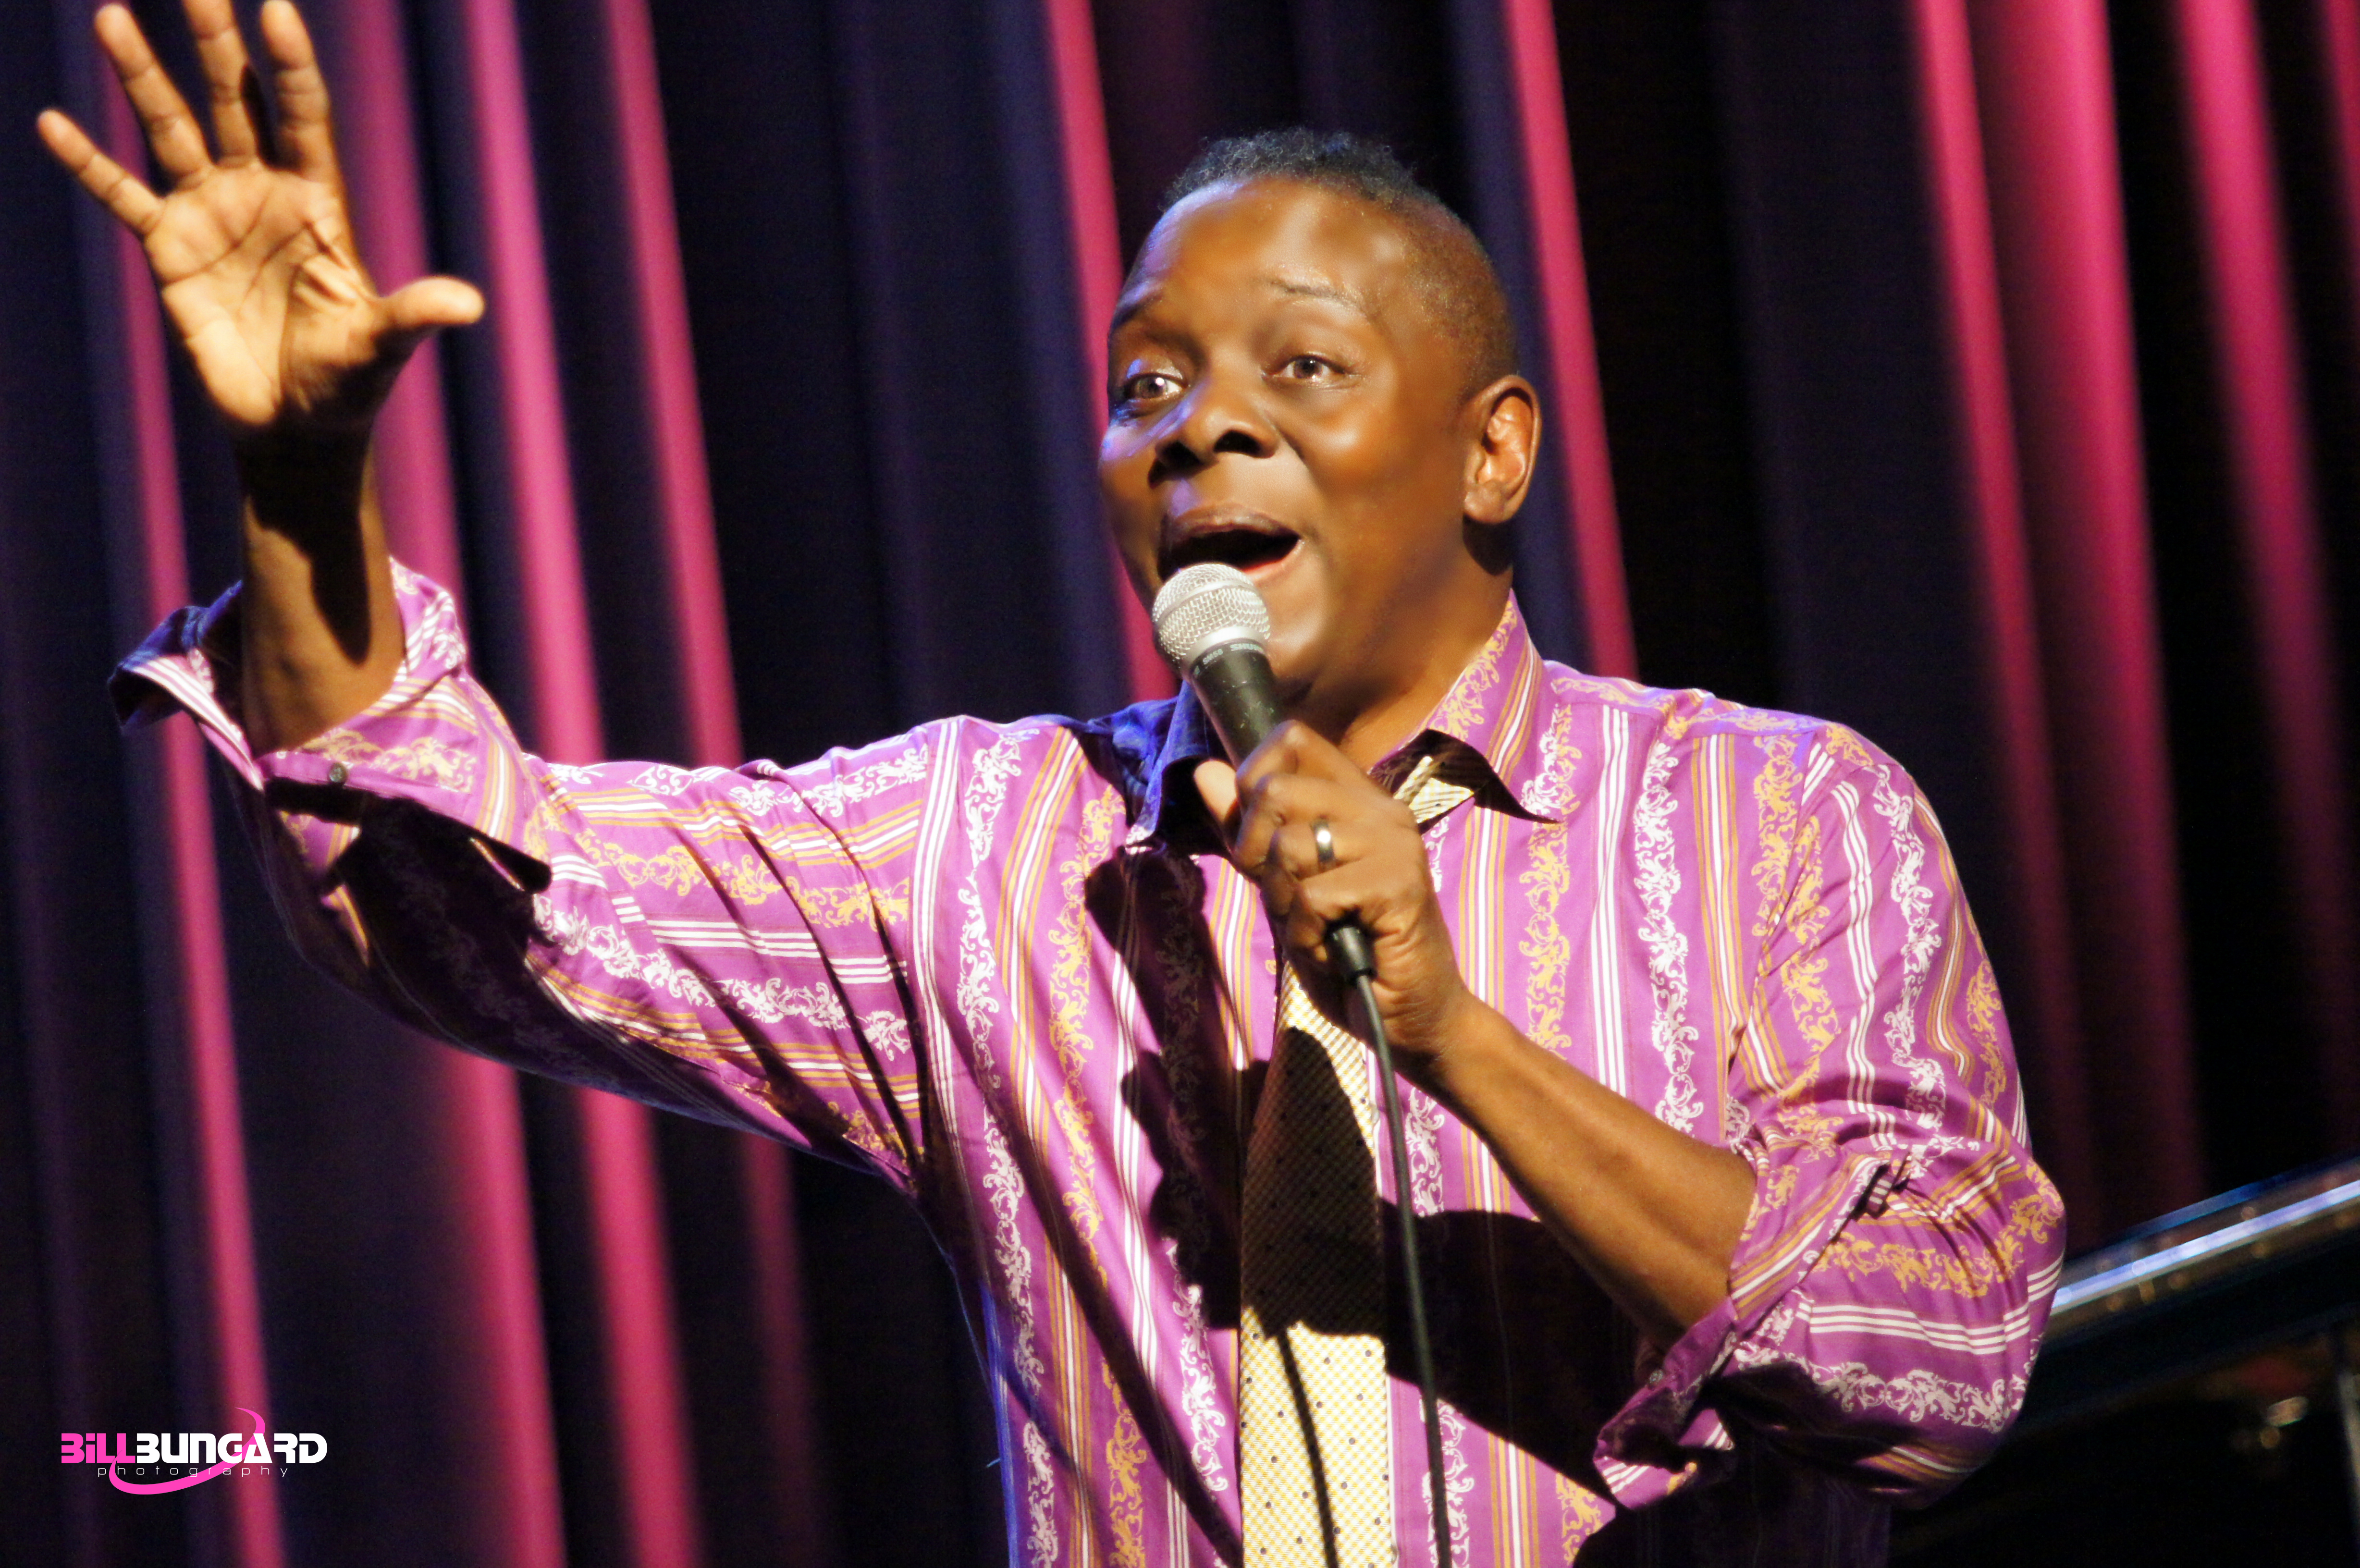 Philip Bailey at Jazz Alley (Photo by Bill Bungard)